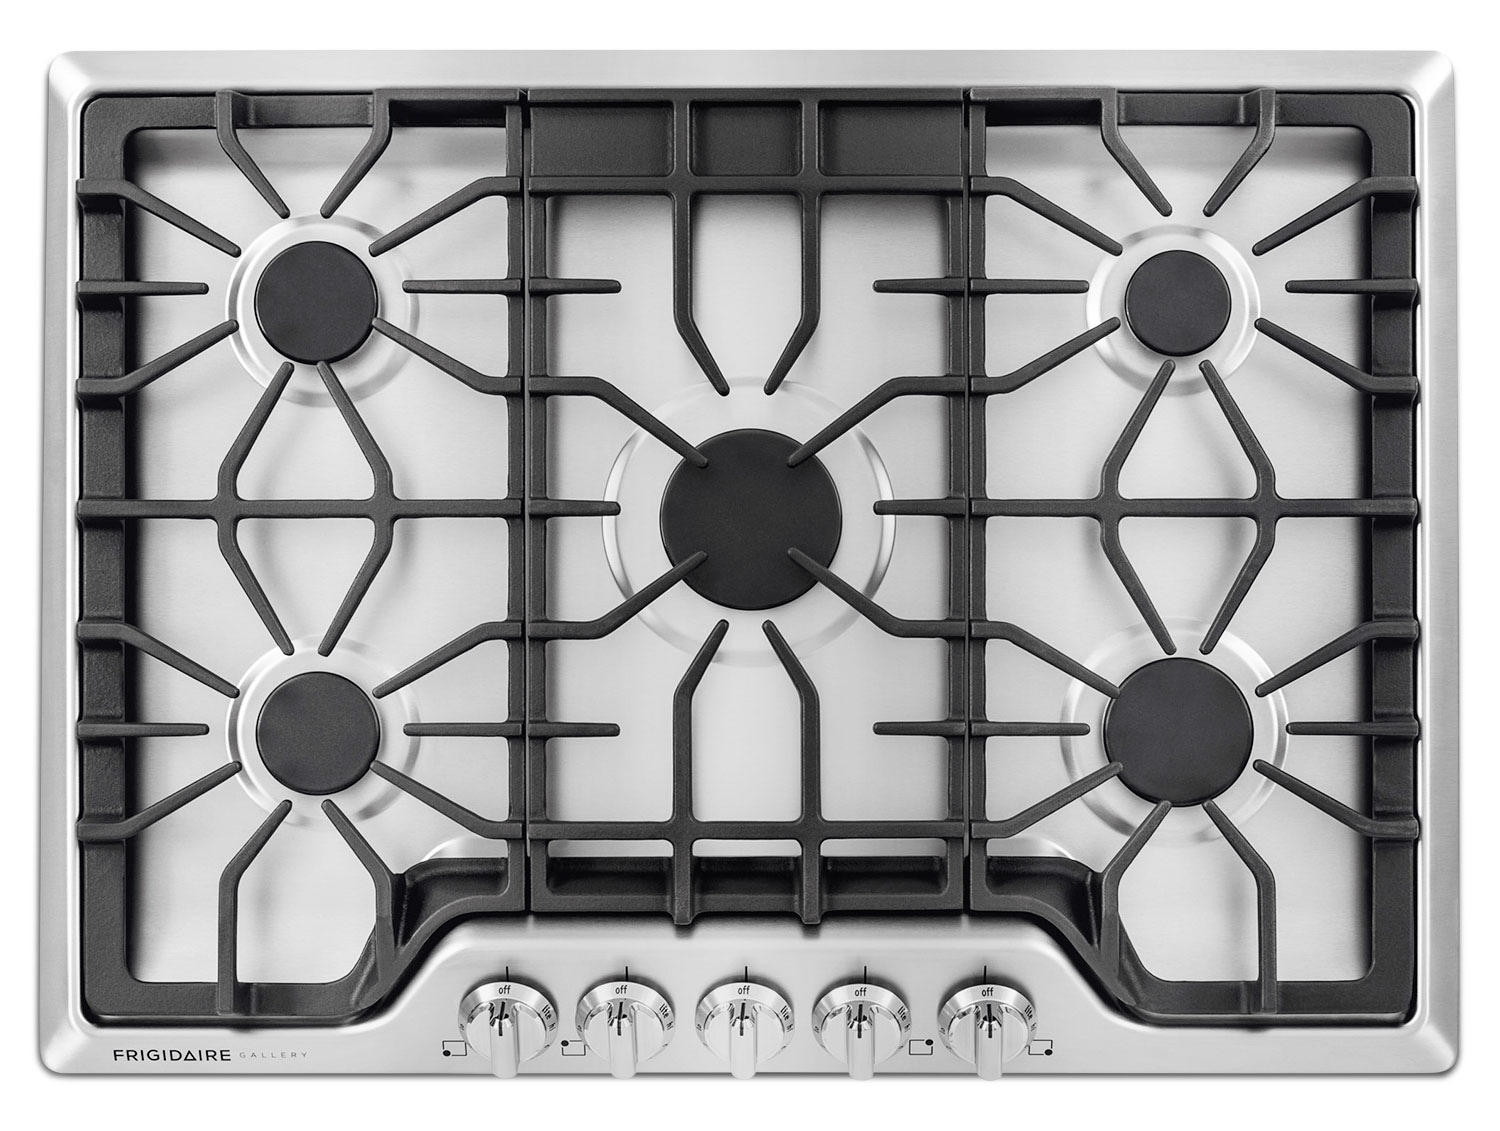 Cooking Products - Frigidaire Gallery Gas Cooktop FGGC3047QS